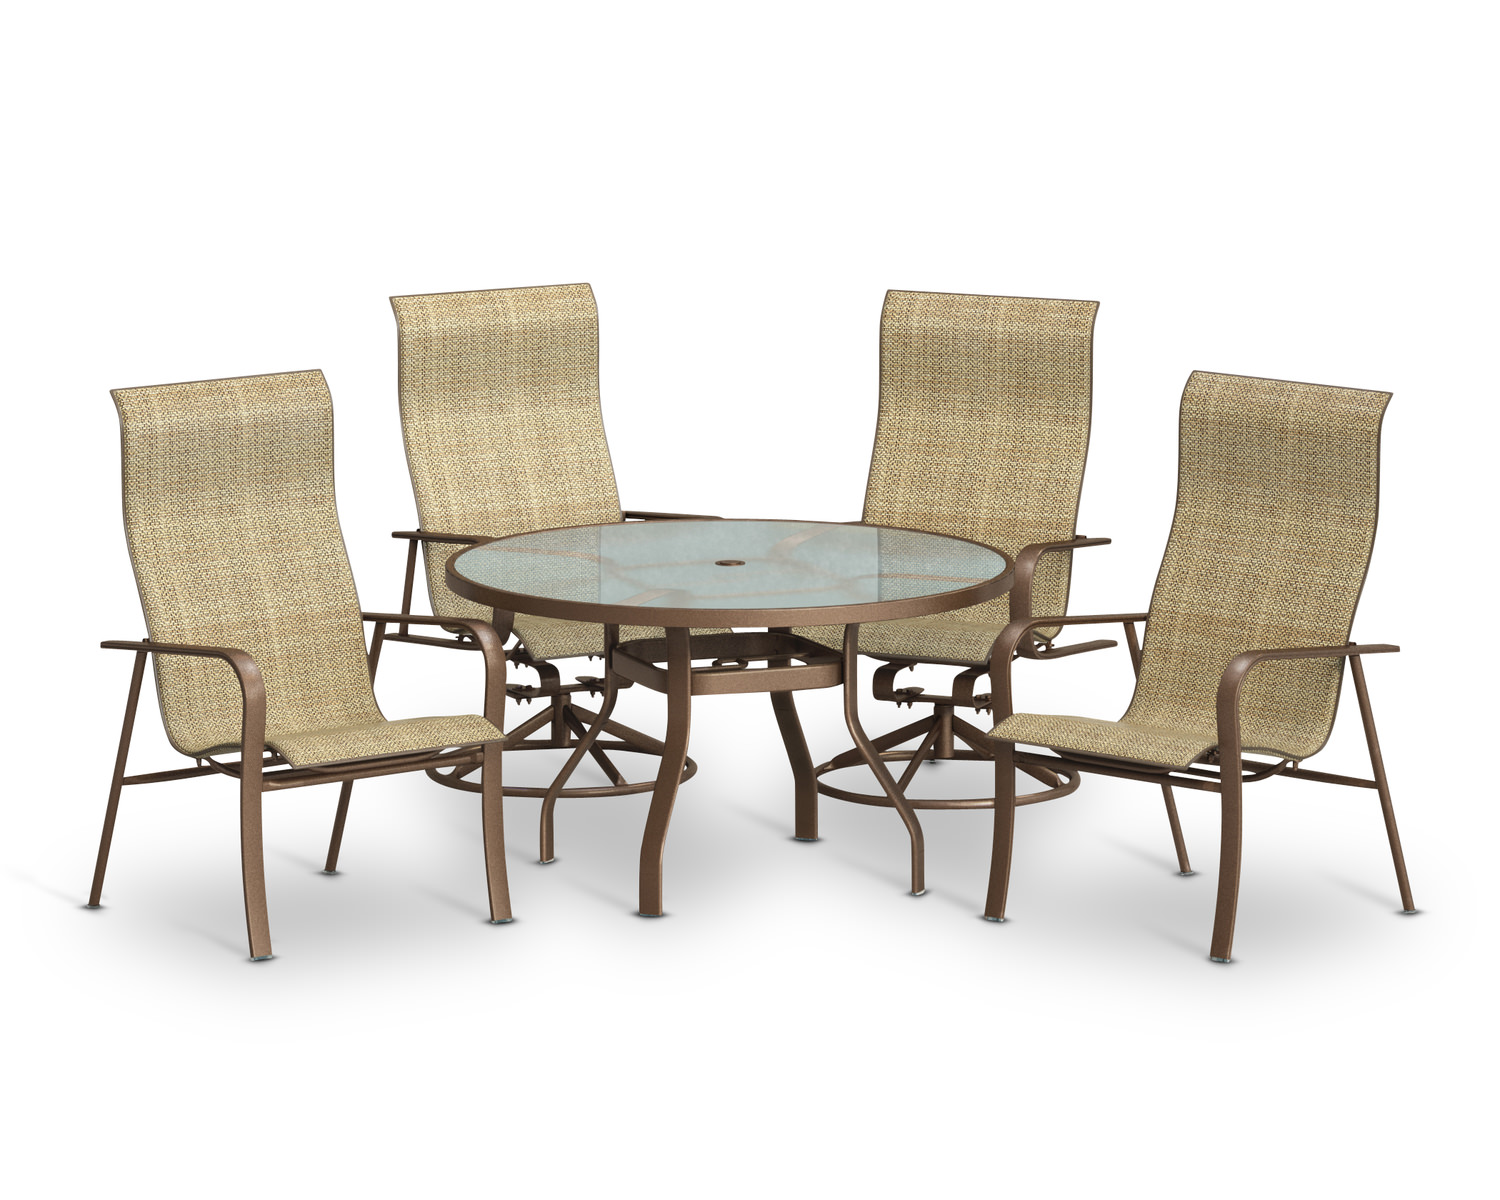 Kashton 5 piece patio set clearance by homecrest hom for Homecrest patio furniture